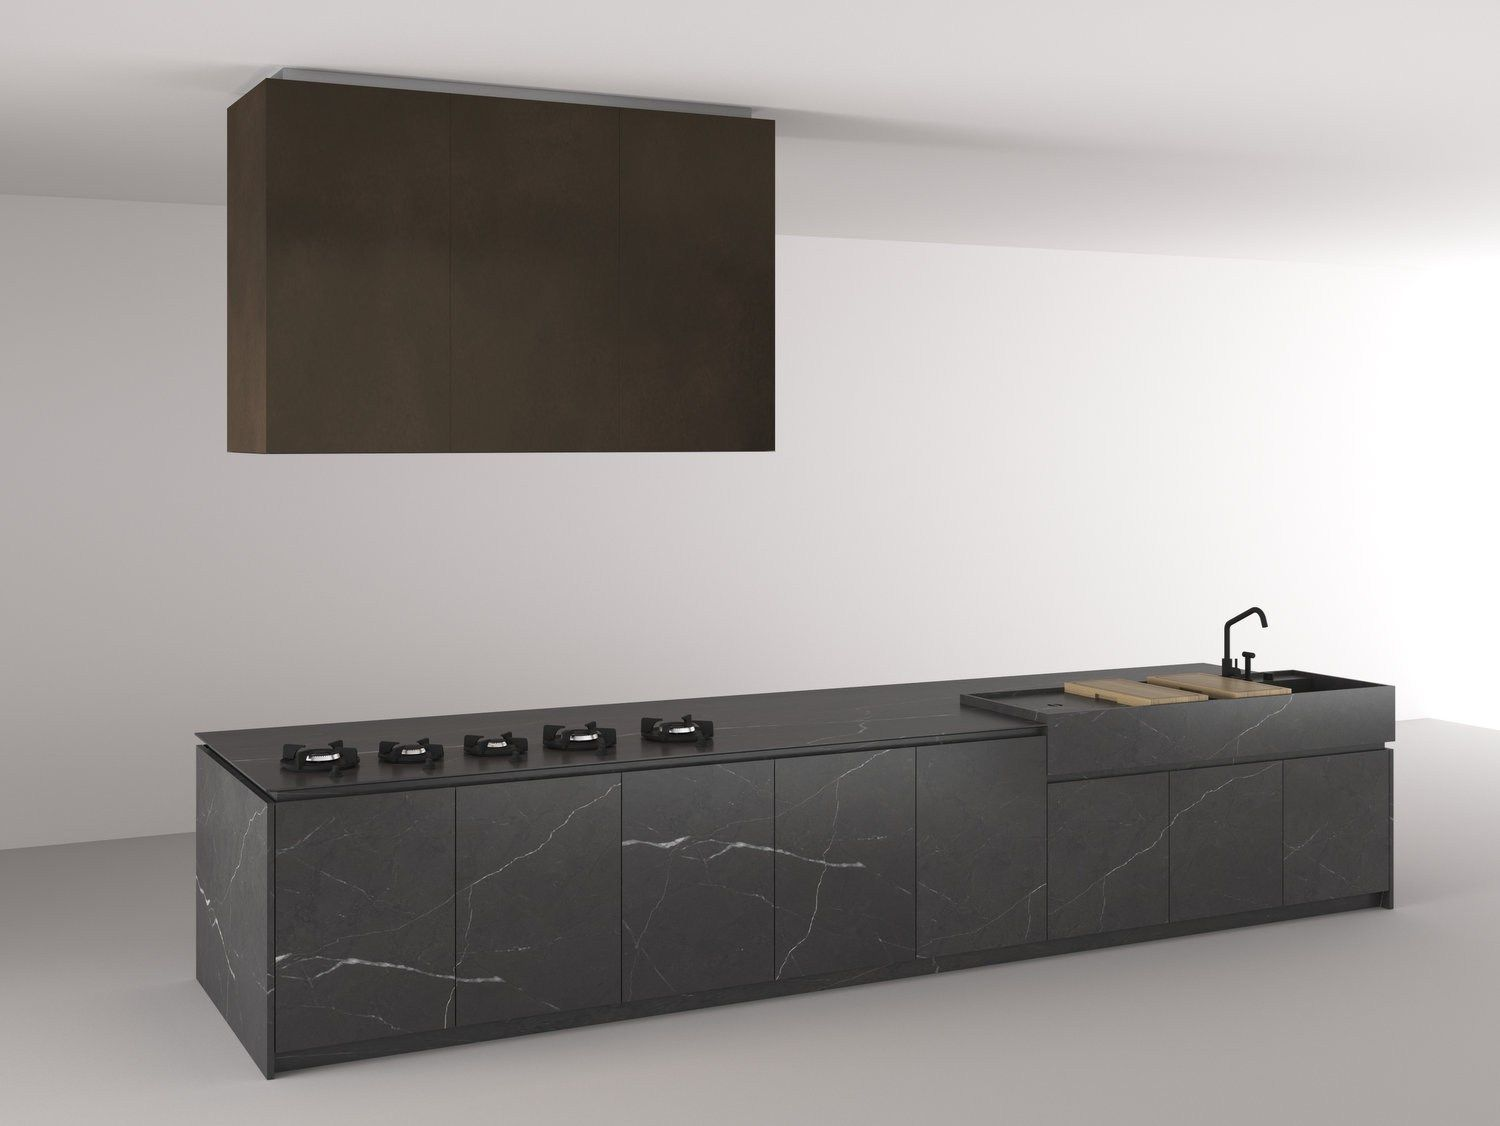 Boffi Code Kitchen By Boffi Fitted Kitchen With Island Design